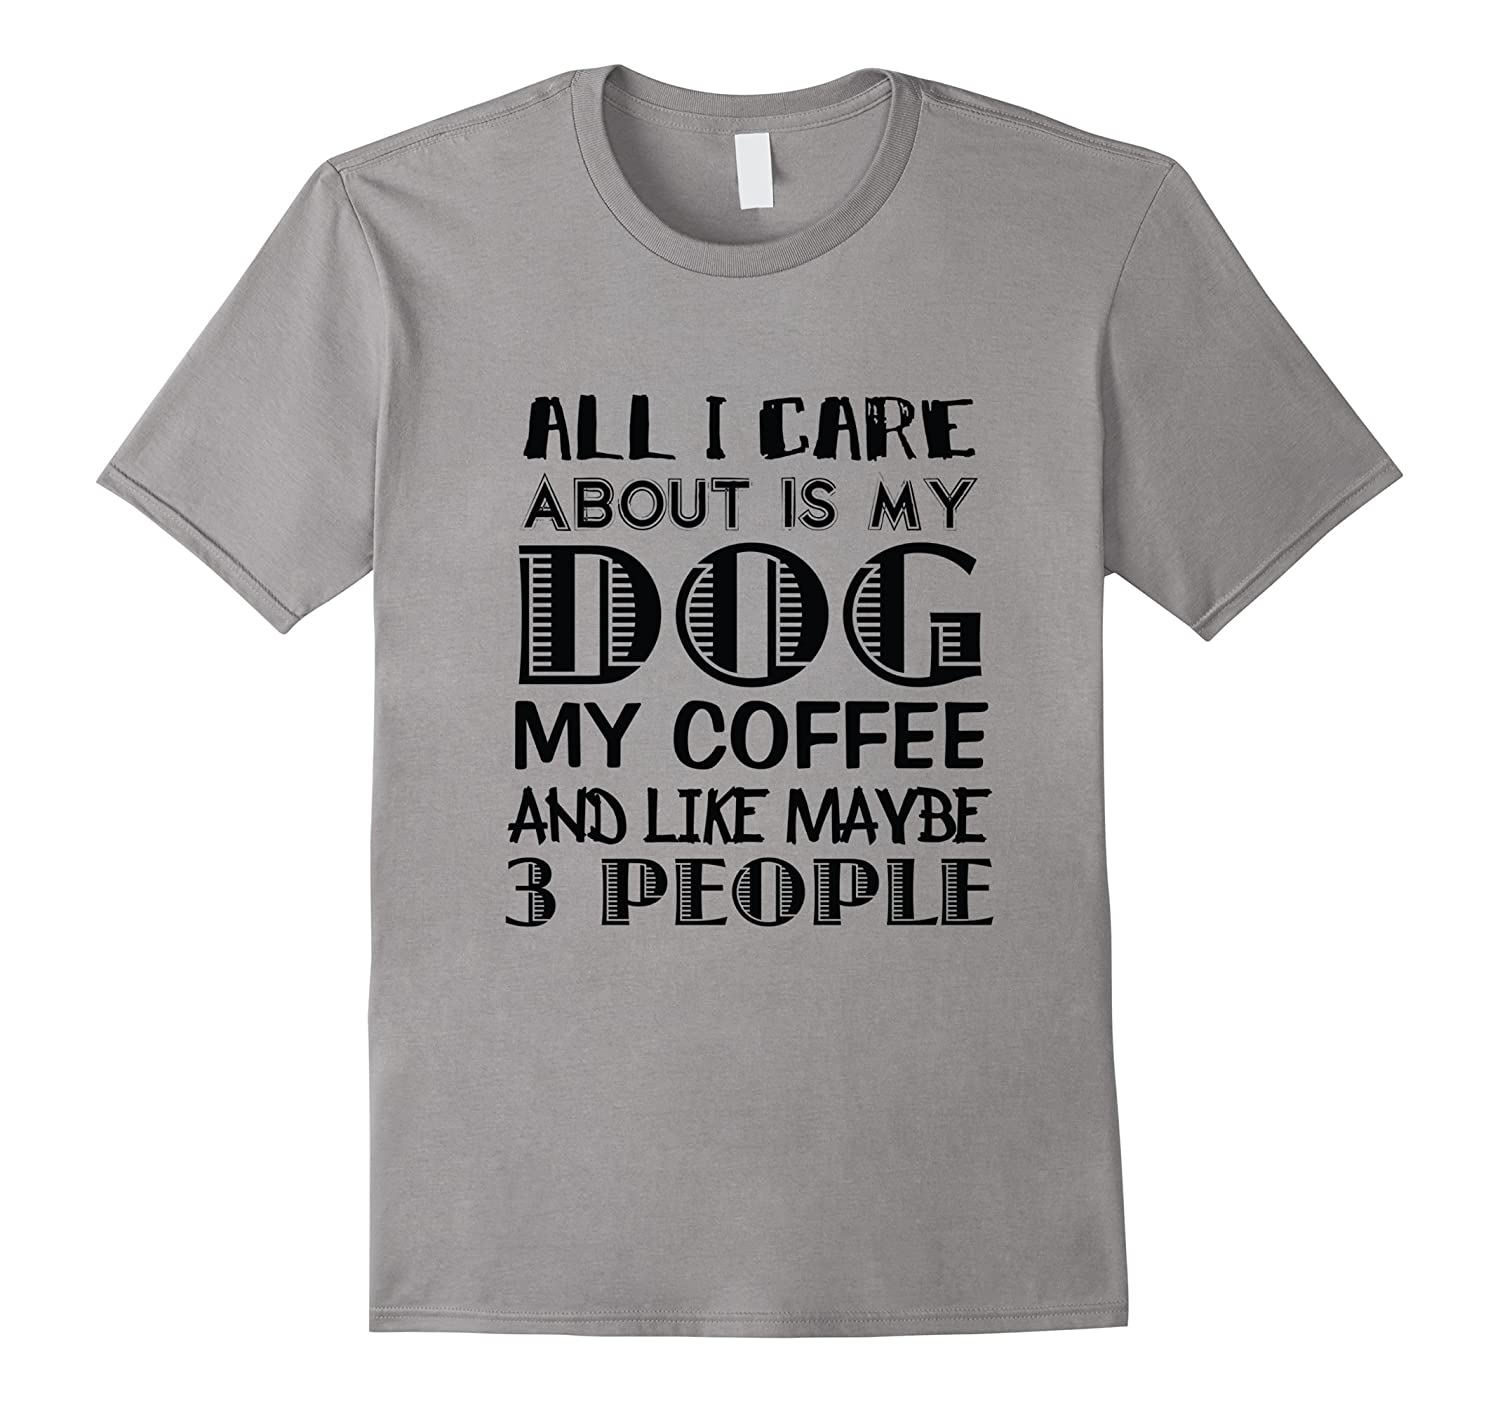 All I Care About is My Dog and My Coffee T-Shirt-CL